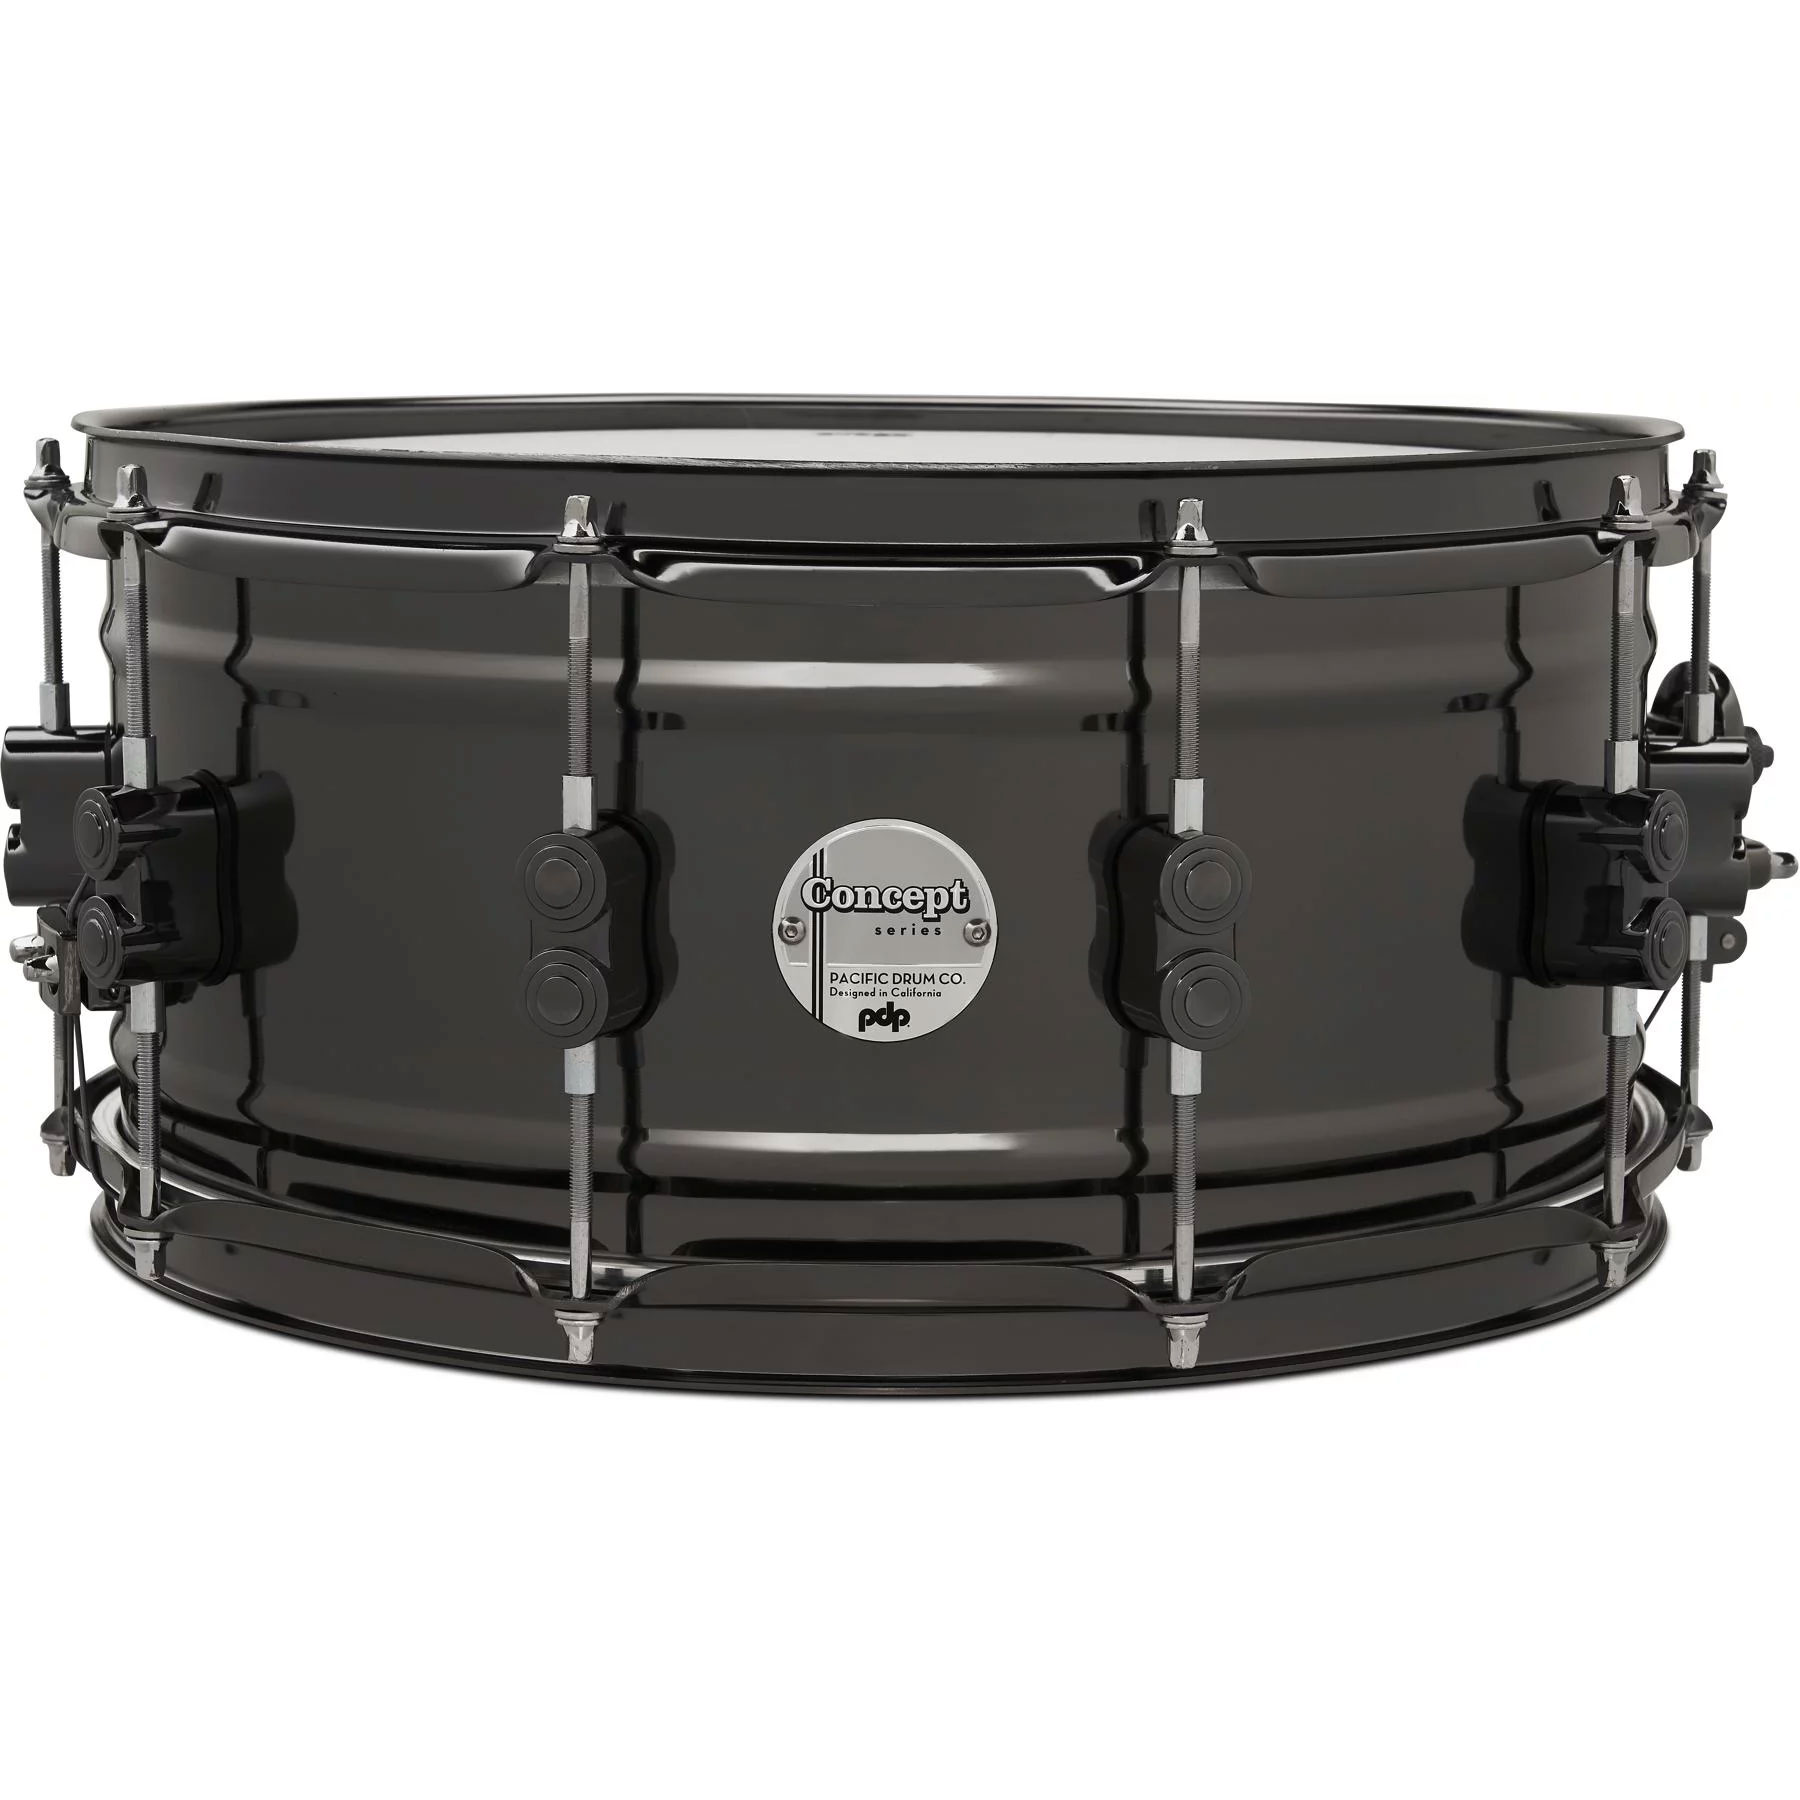 "PDP 6.5"" x 14"" Concept 1mm Black Nickel Over Brass Snare Drum"